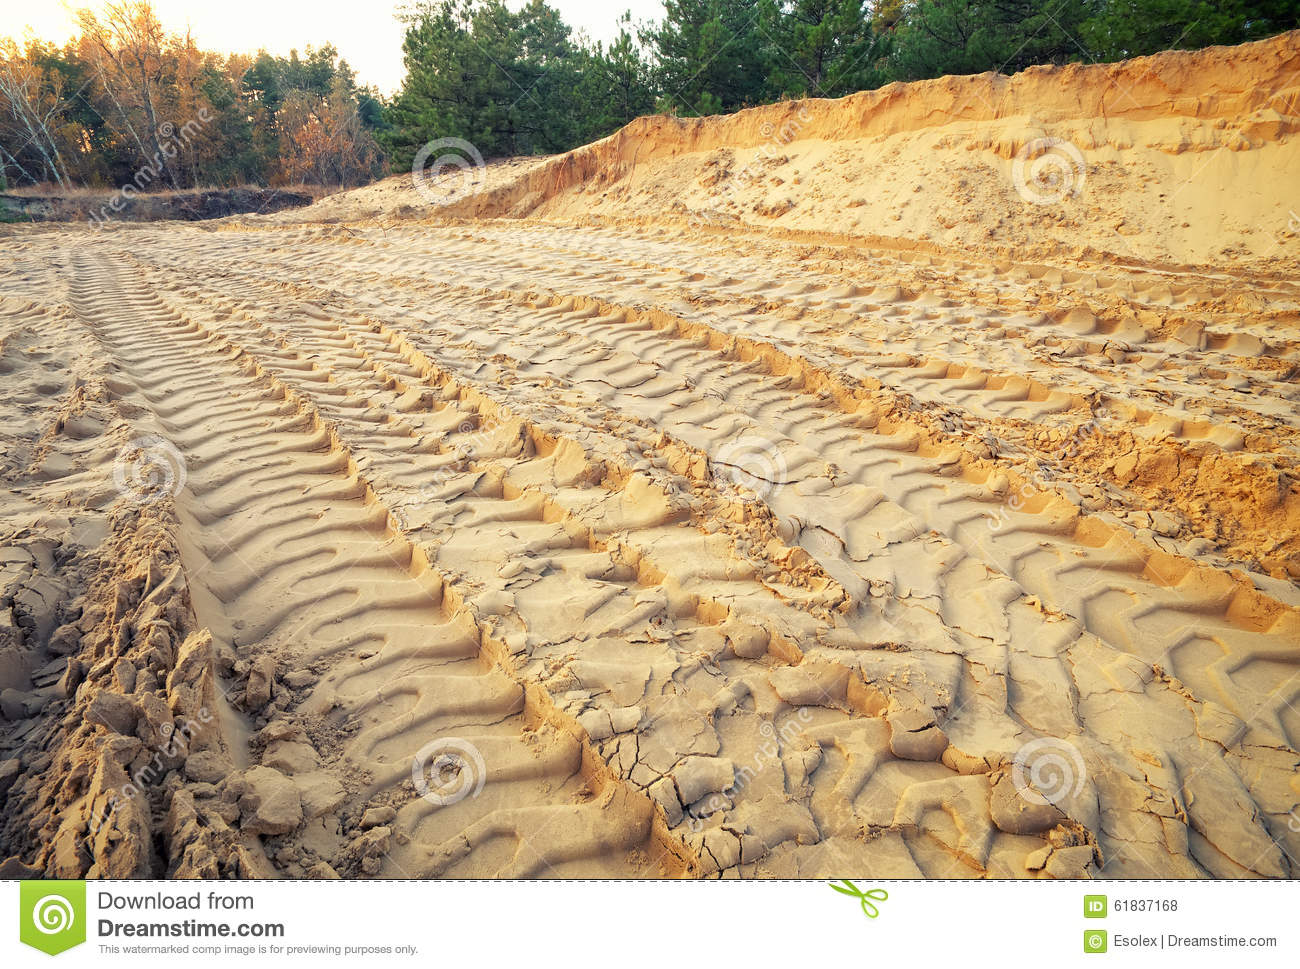 Tire tracks on the sand.